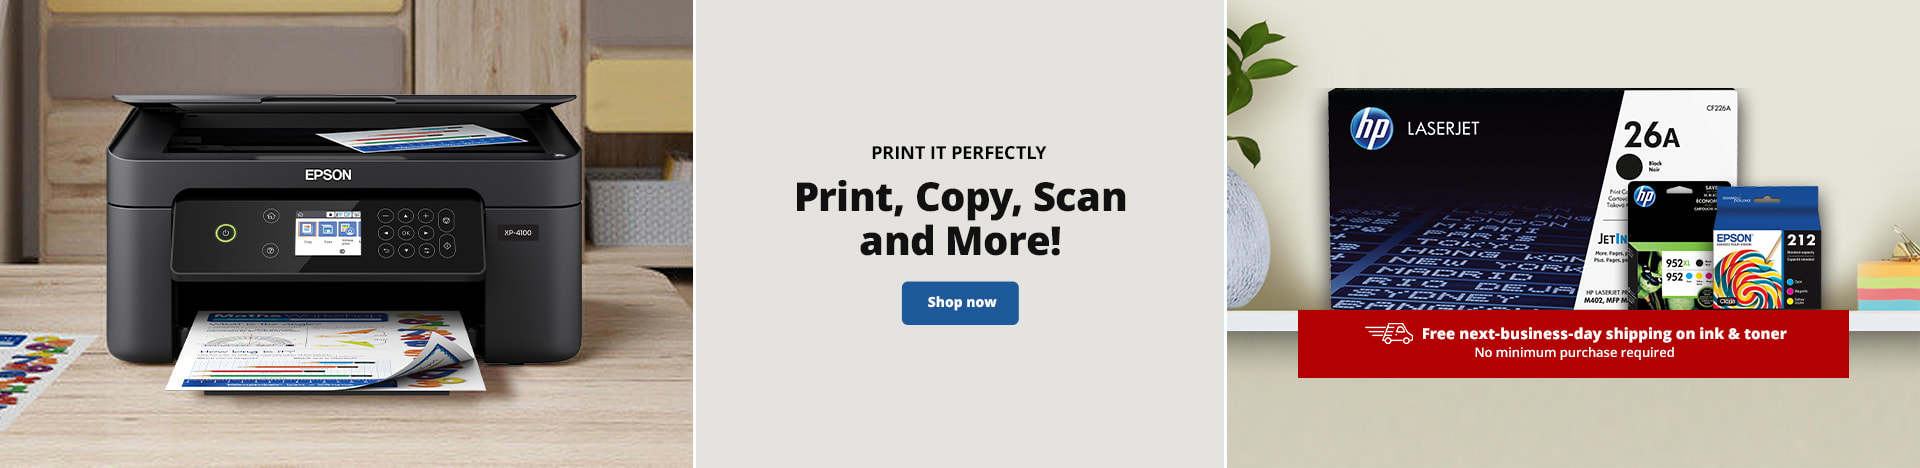 Print it Perfectly. Print, Copy, Scan and More!